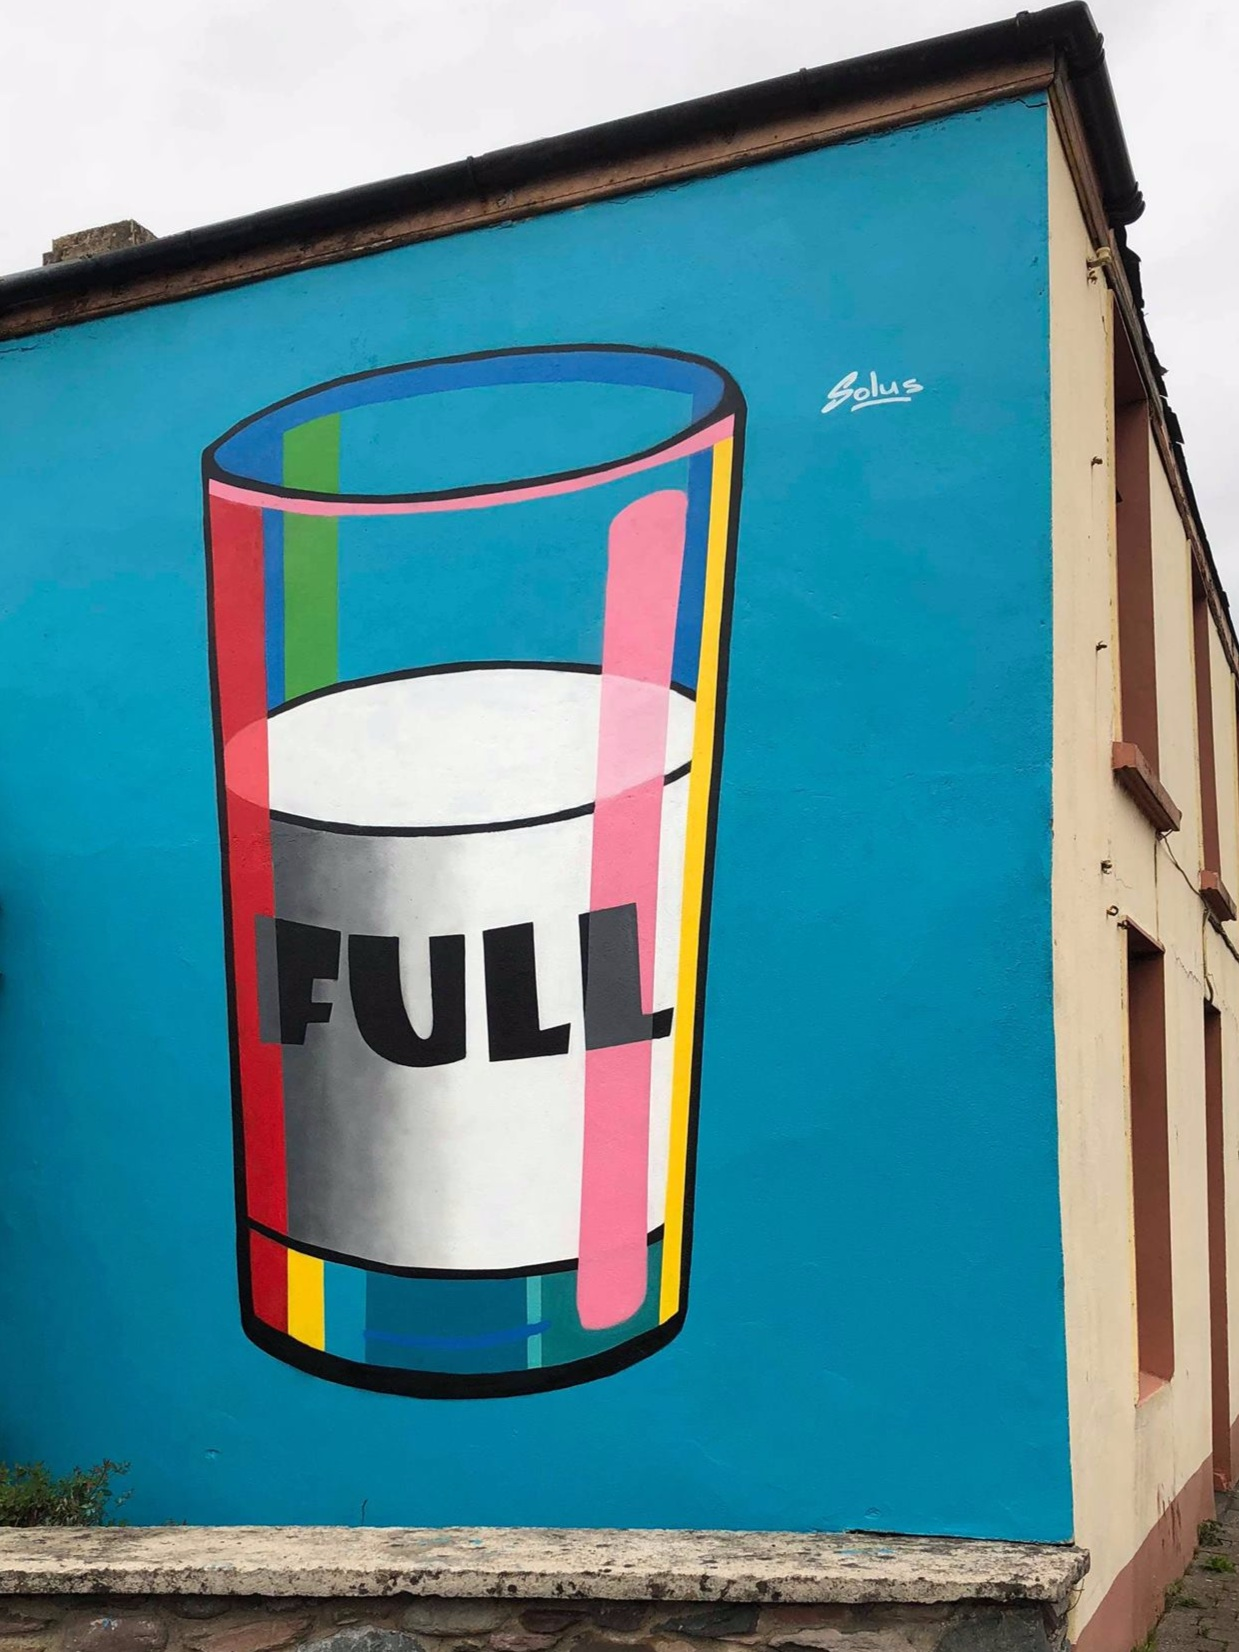 FULL  (2018)   by  Solus